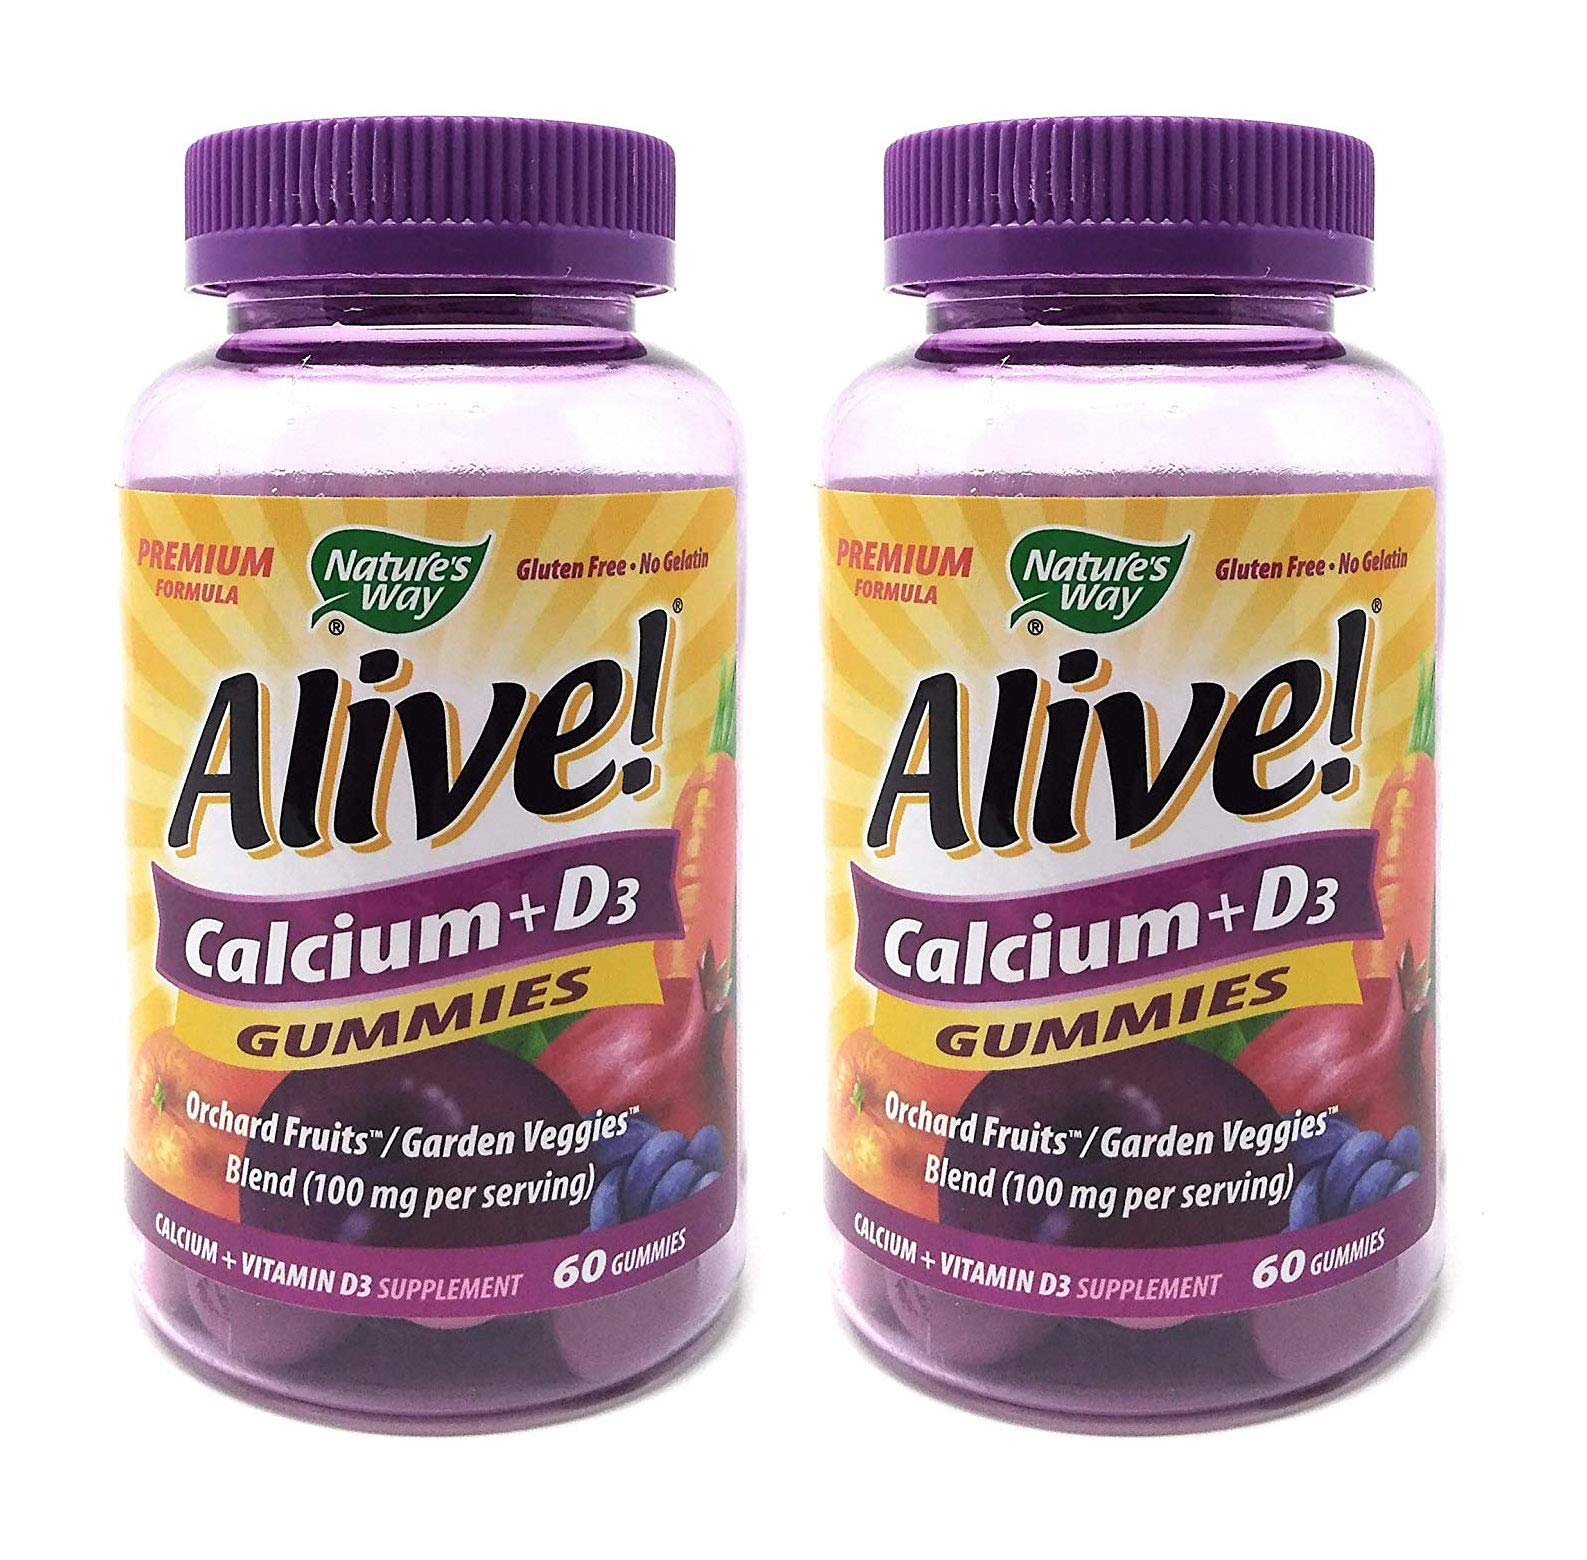 2-Pack Natures Way Alive! Calcium Gummies Plus Vitamin D3 - 60 Gummies Gluten Free